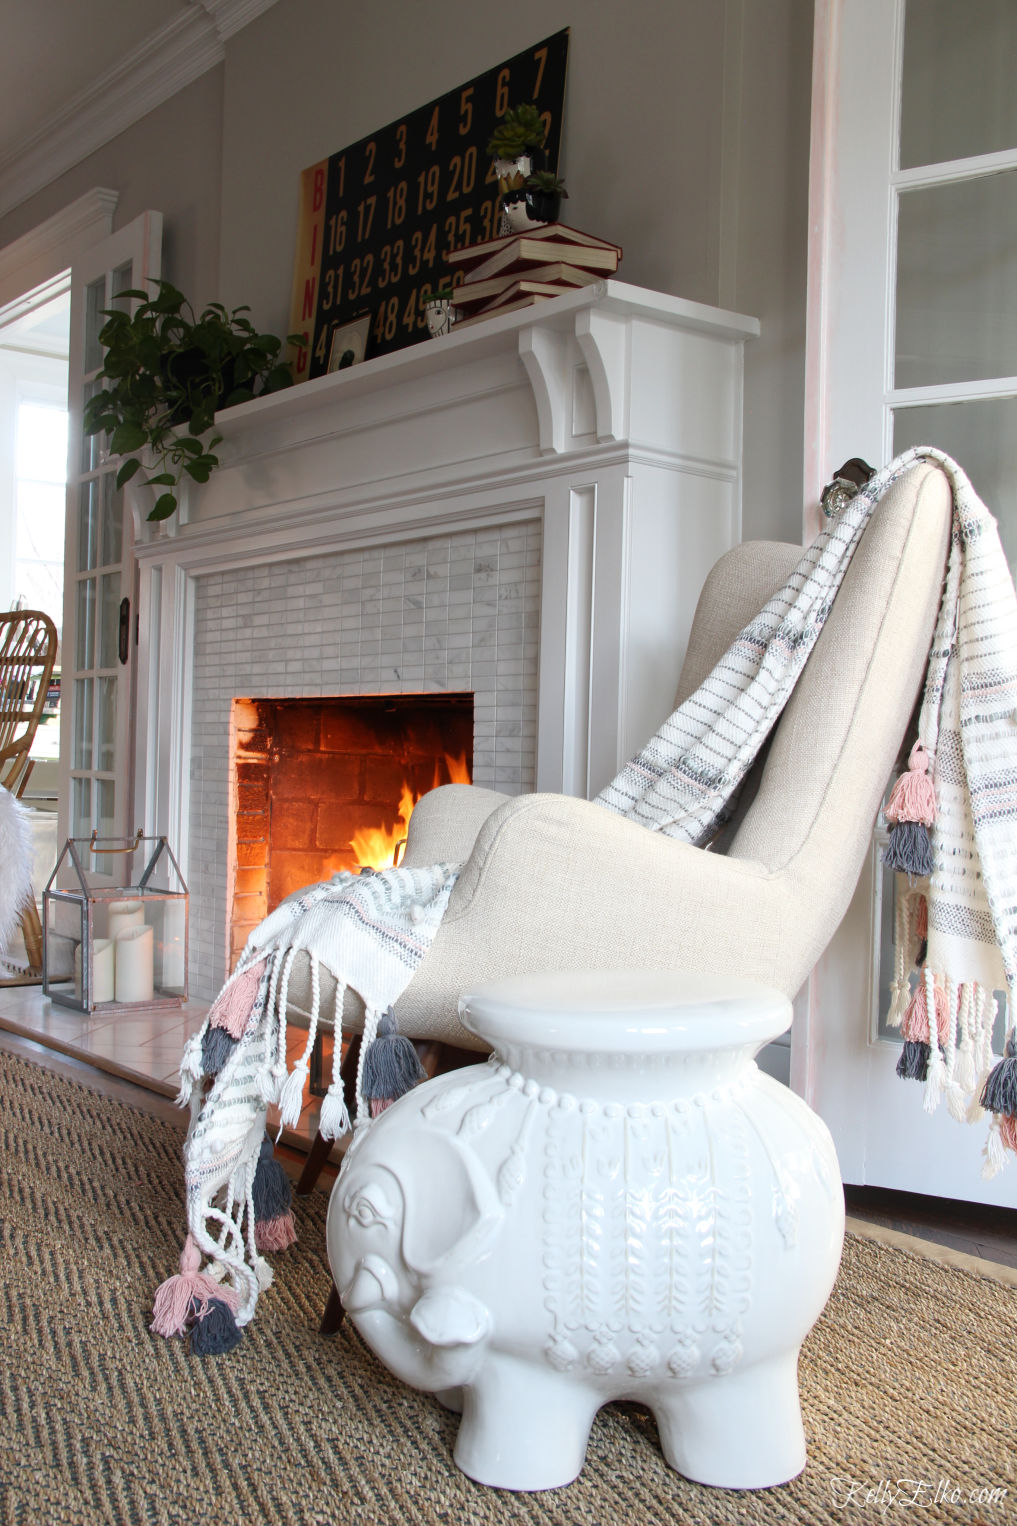 Love this mantel in black and white with a vintage bingo scorecard and the adorable elephant stool and tassel throw kellyelko.com #livingroomdecor #bohodecor #eclecticdecor #elephant #vintagemodern #mantel #manteldecor #fixerupperstyle #farmhousedecor #kellyelko.com #fireplacedecor #cozydecor